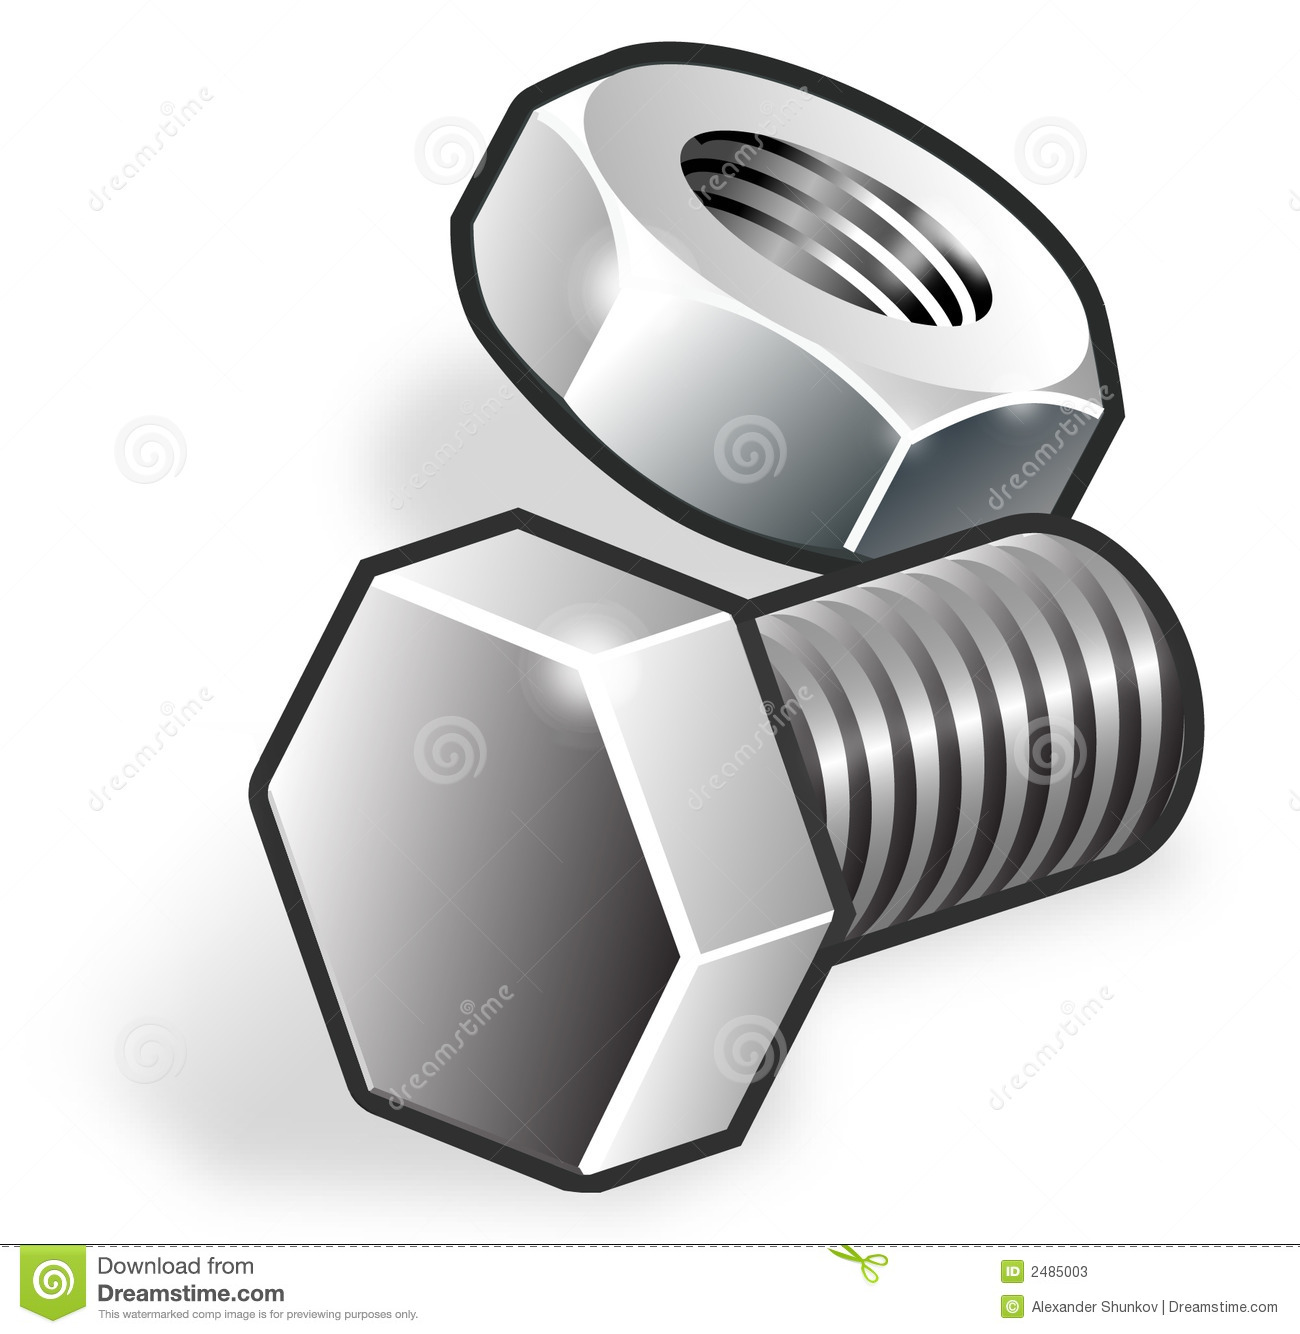 Bolts clipart - Clipground